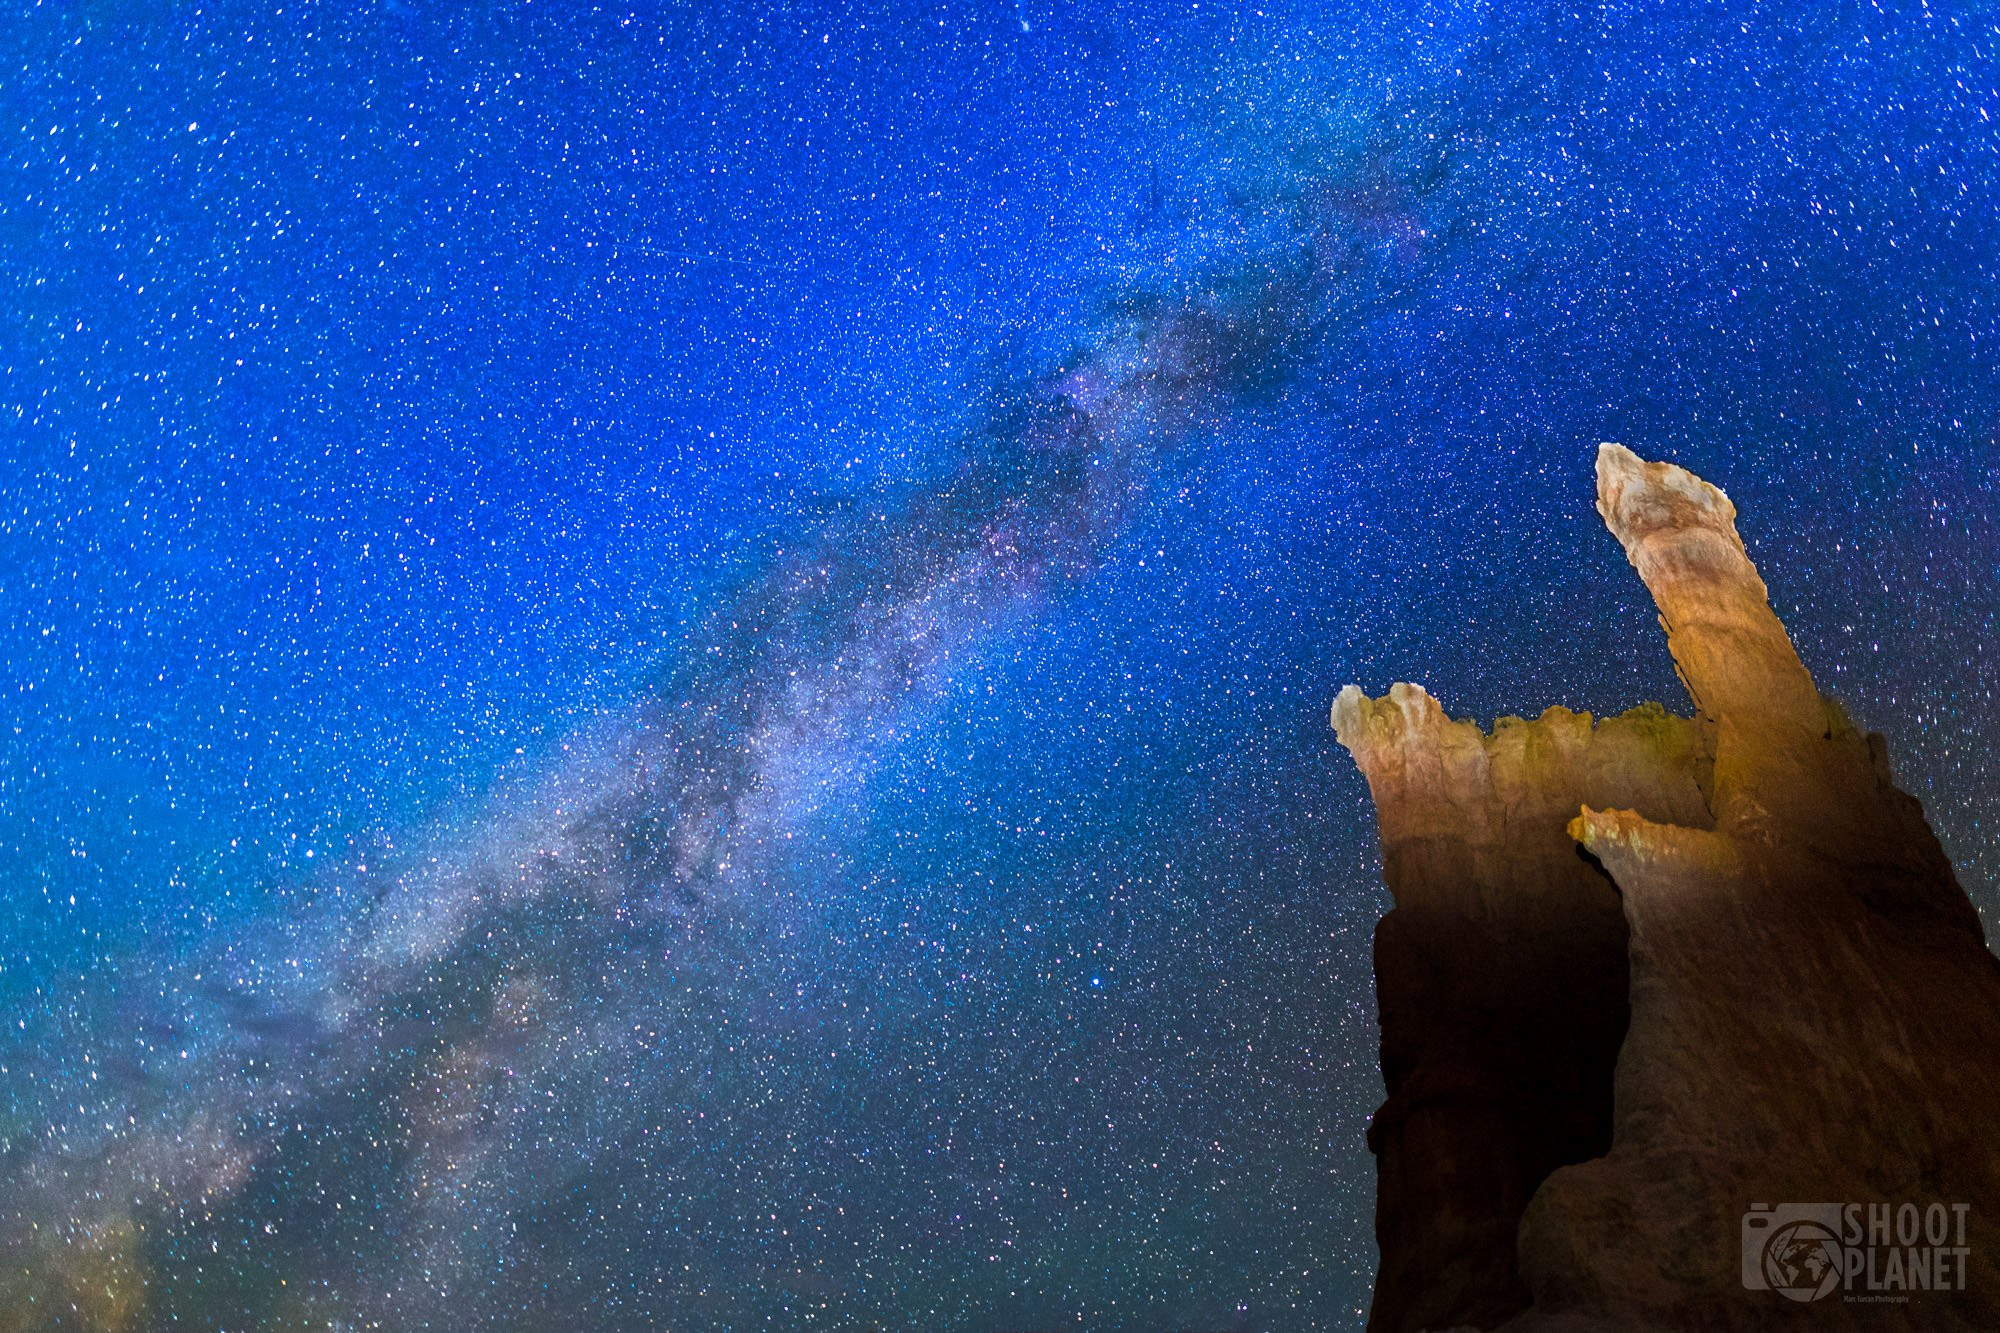 Bryce Canyon Milky Way galactic center, USA